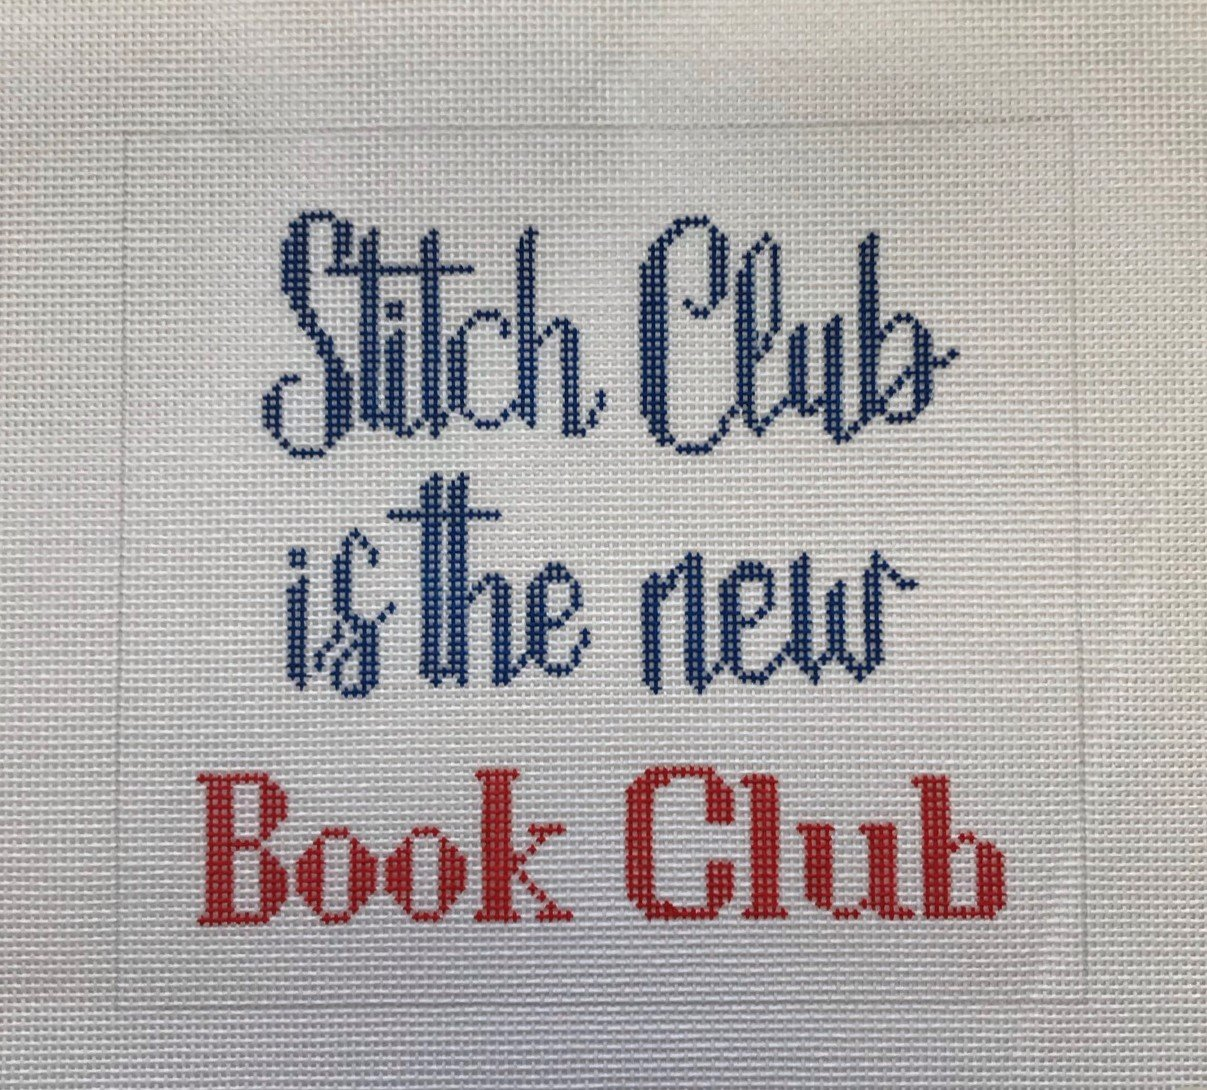 WW/APLS20 Stitch Club is the New Book Club